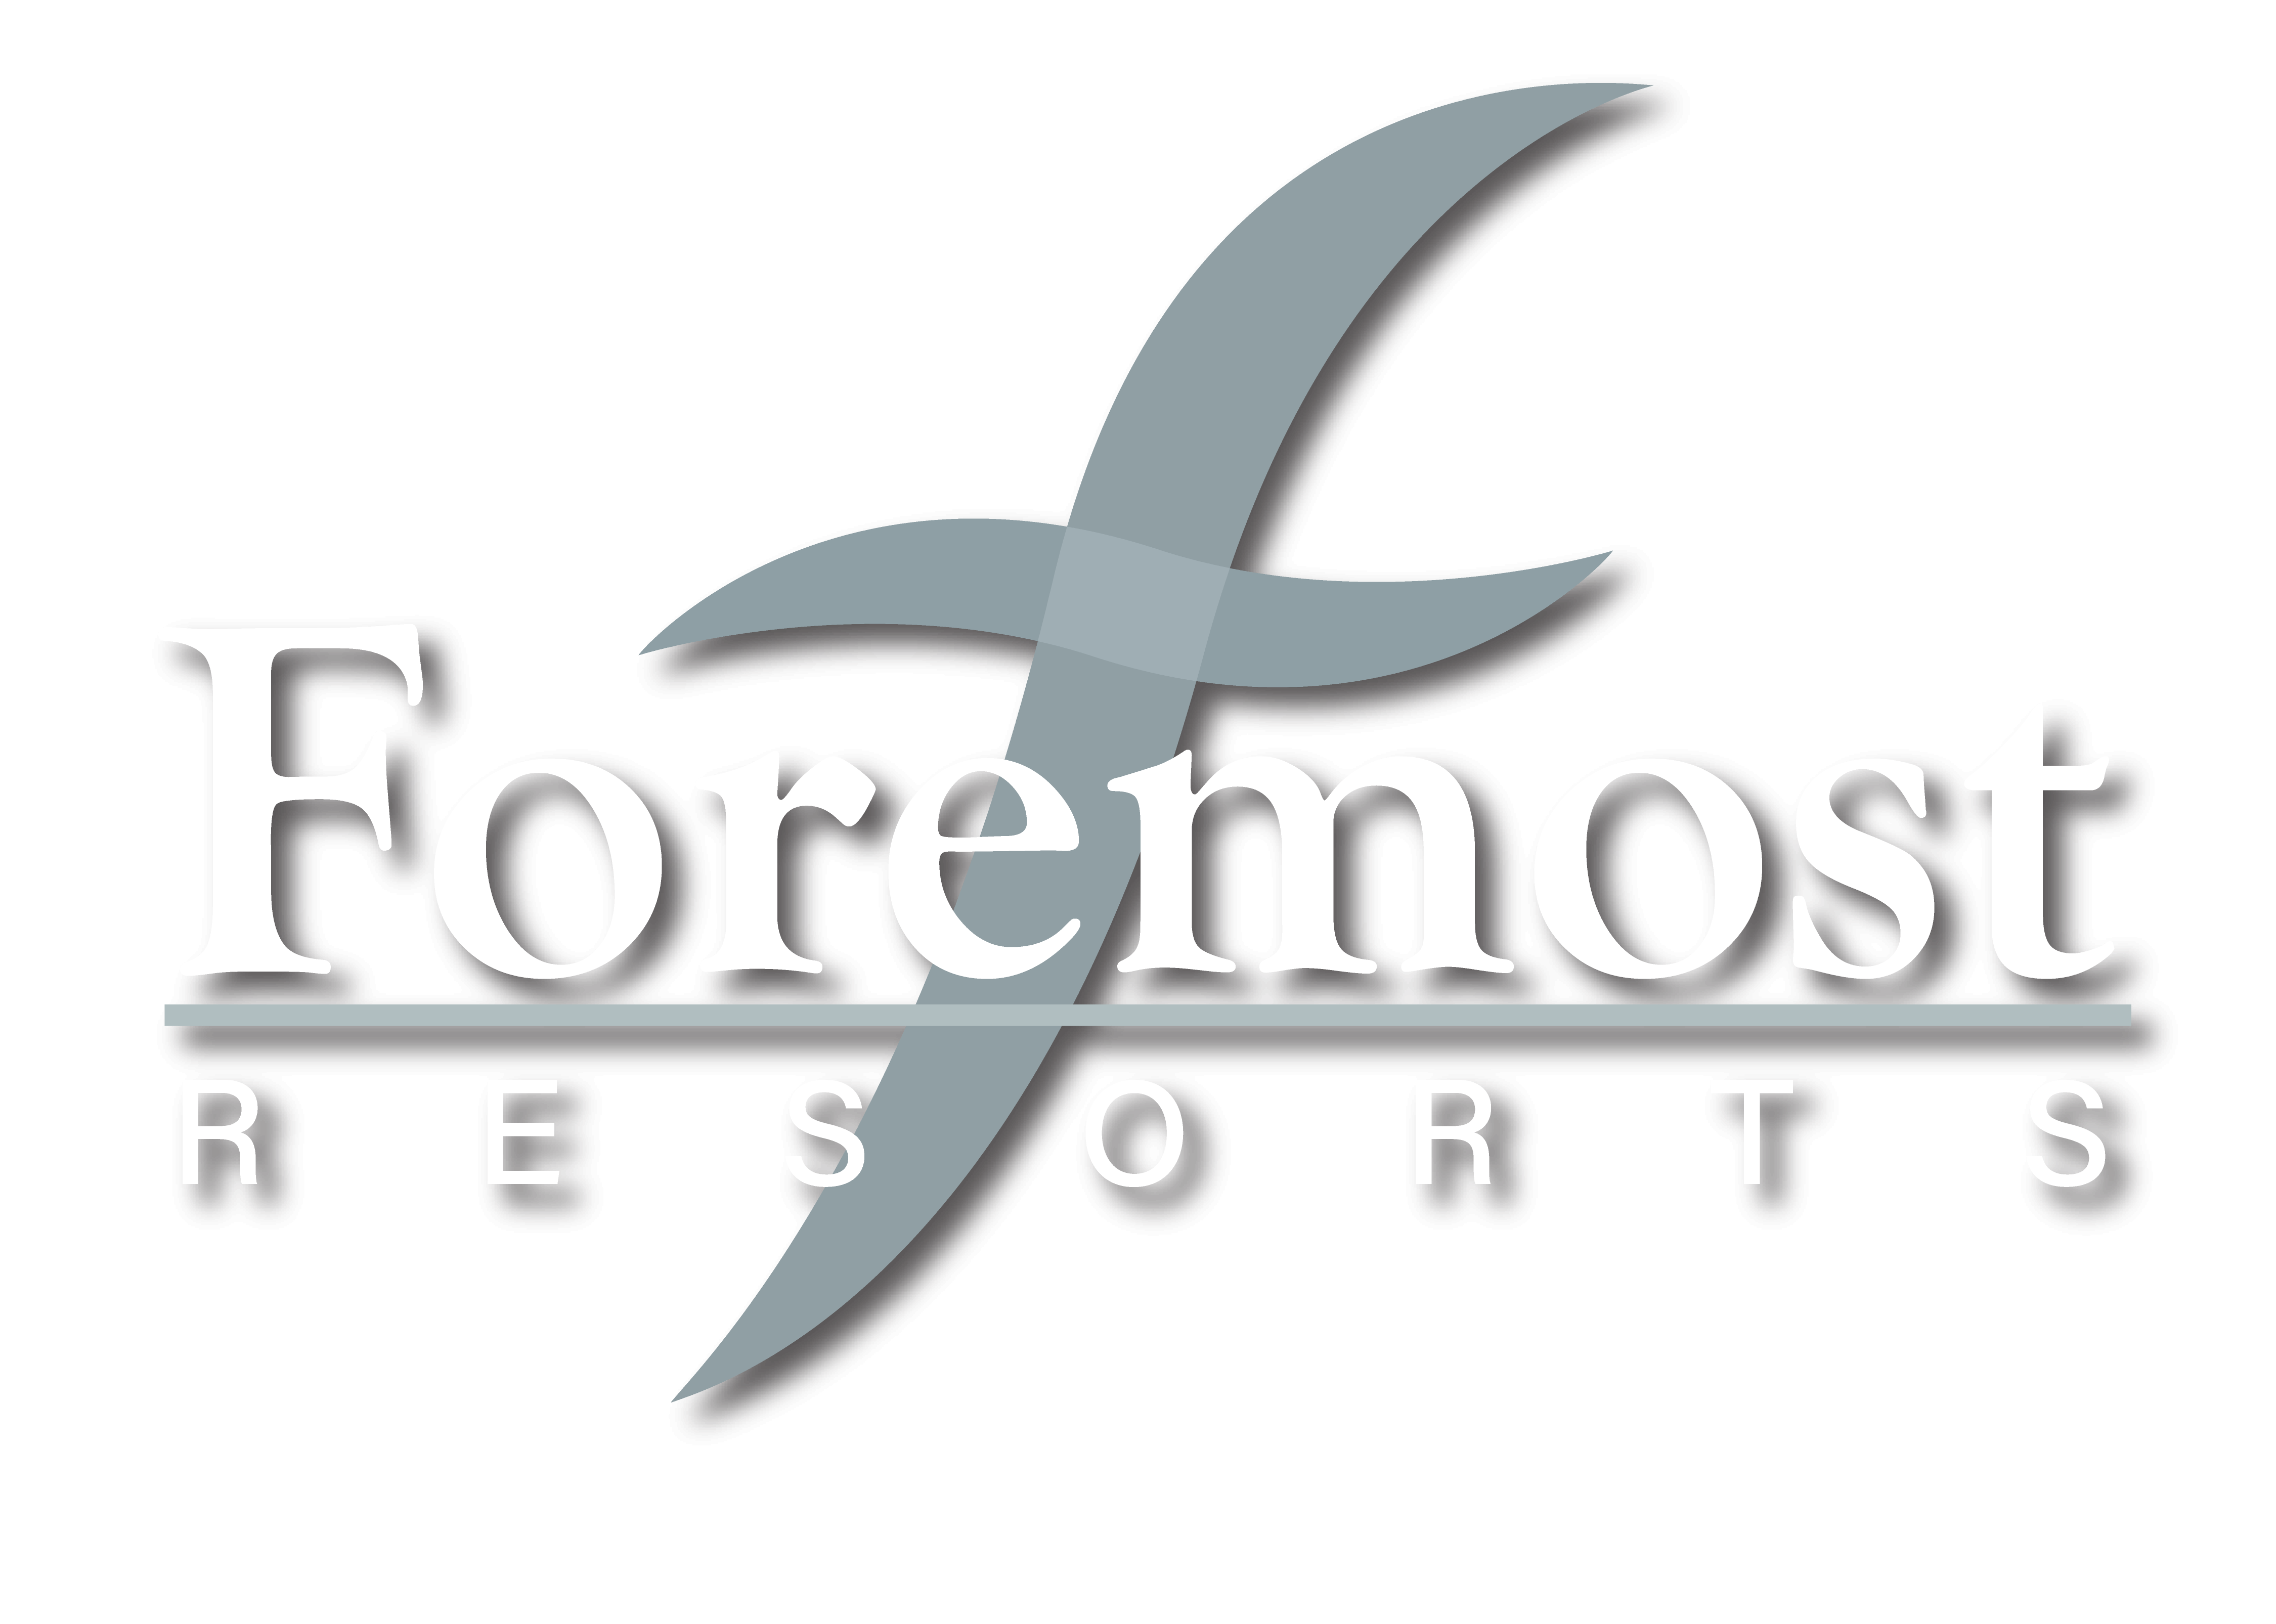 Foremost Resorts